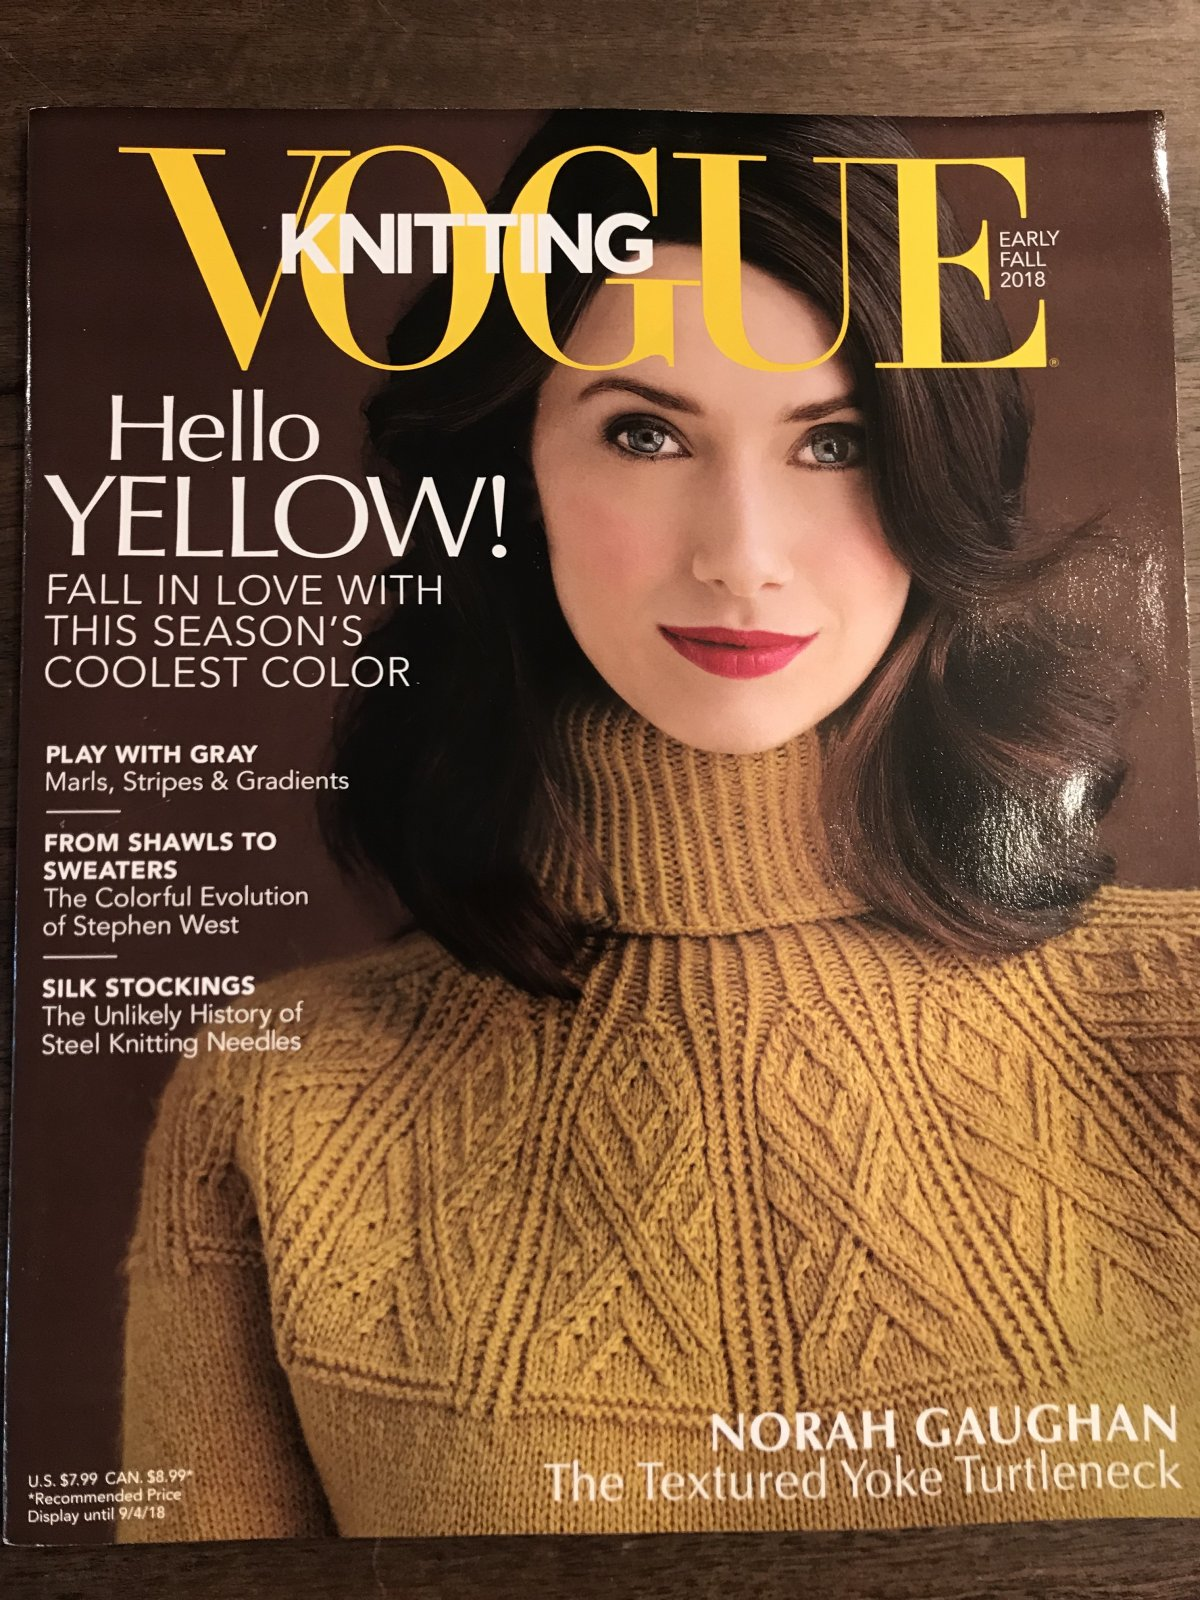 Vogue Knitting Early Fall 2018